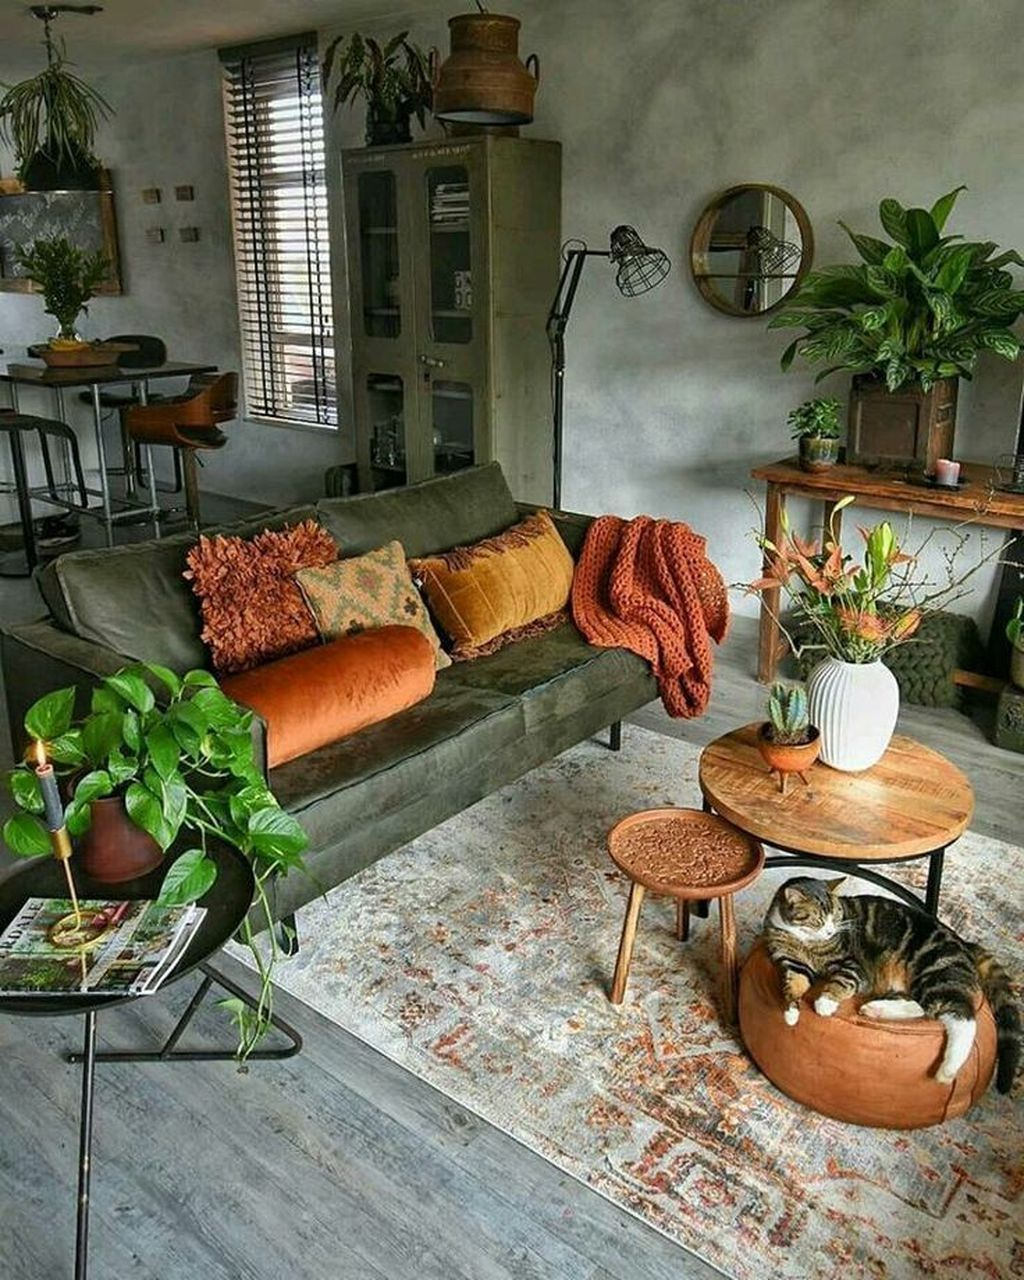 50 The Best Vintage Home Decoration Ideas Sweetyhomee Rooms Home Decor Living Room Decor Set Home Decor Trends Living room decor vintage